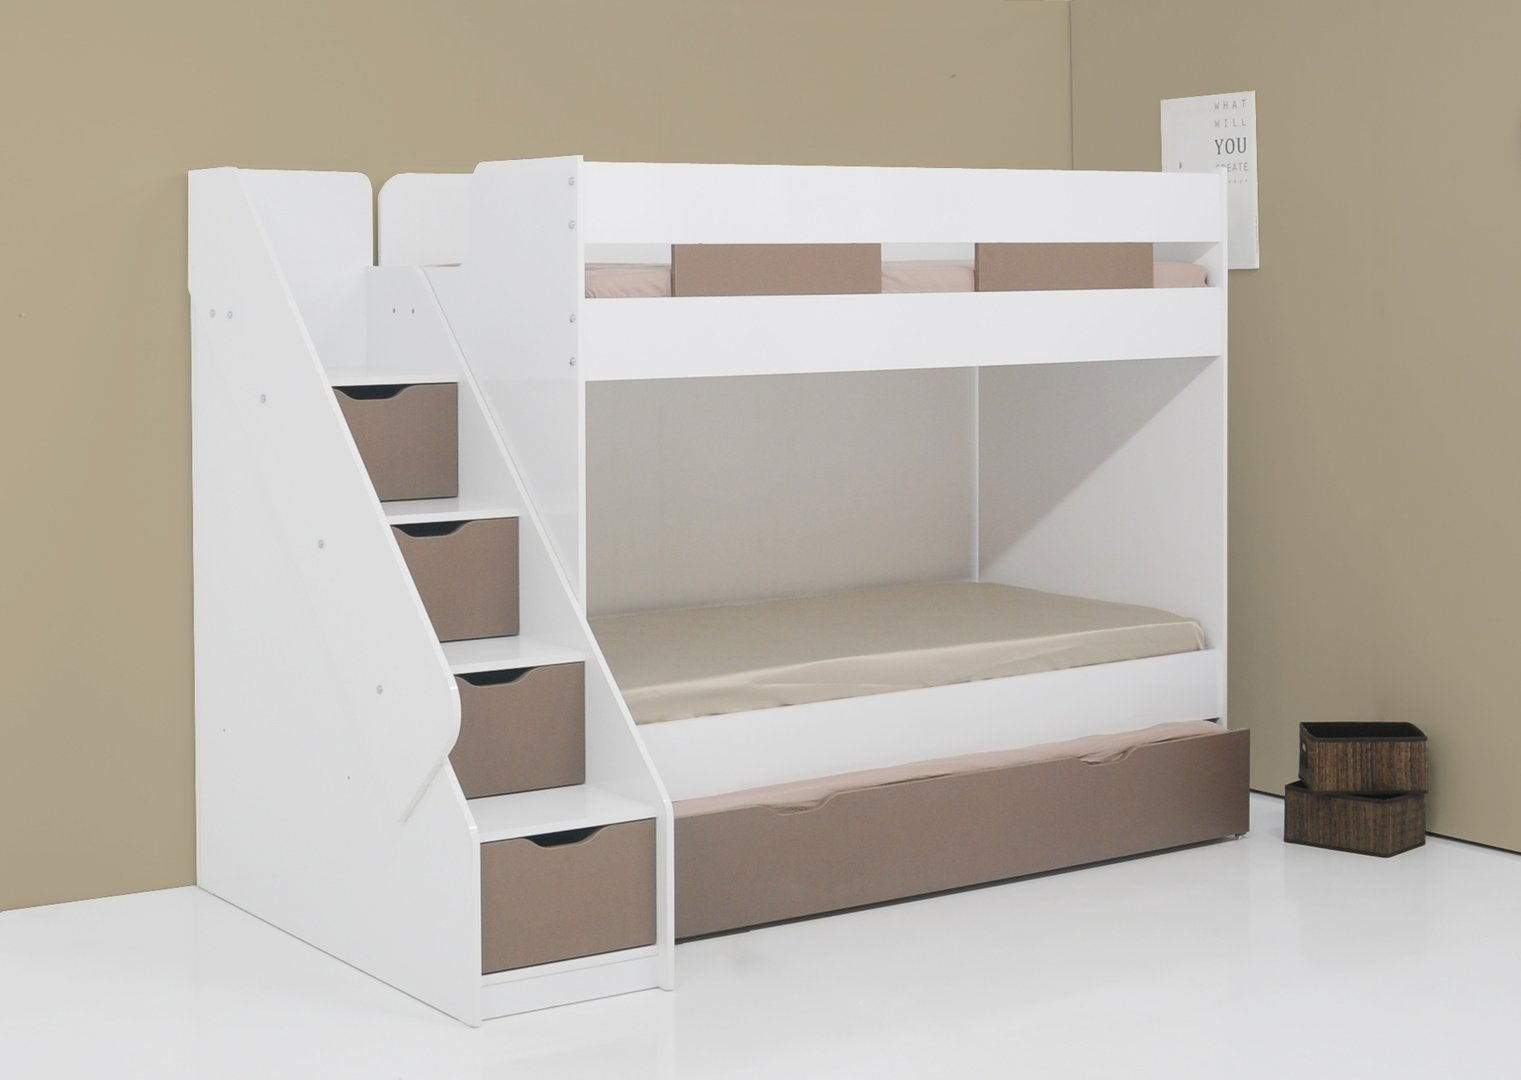 hochbett etagenbett rio bymm bunk bed precogs. Black Bedroom Furniture Sets. Home Design Ideas